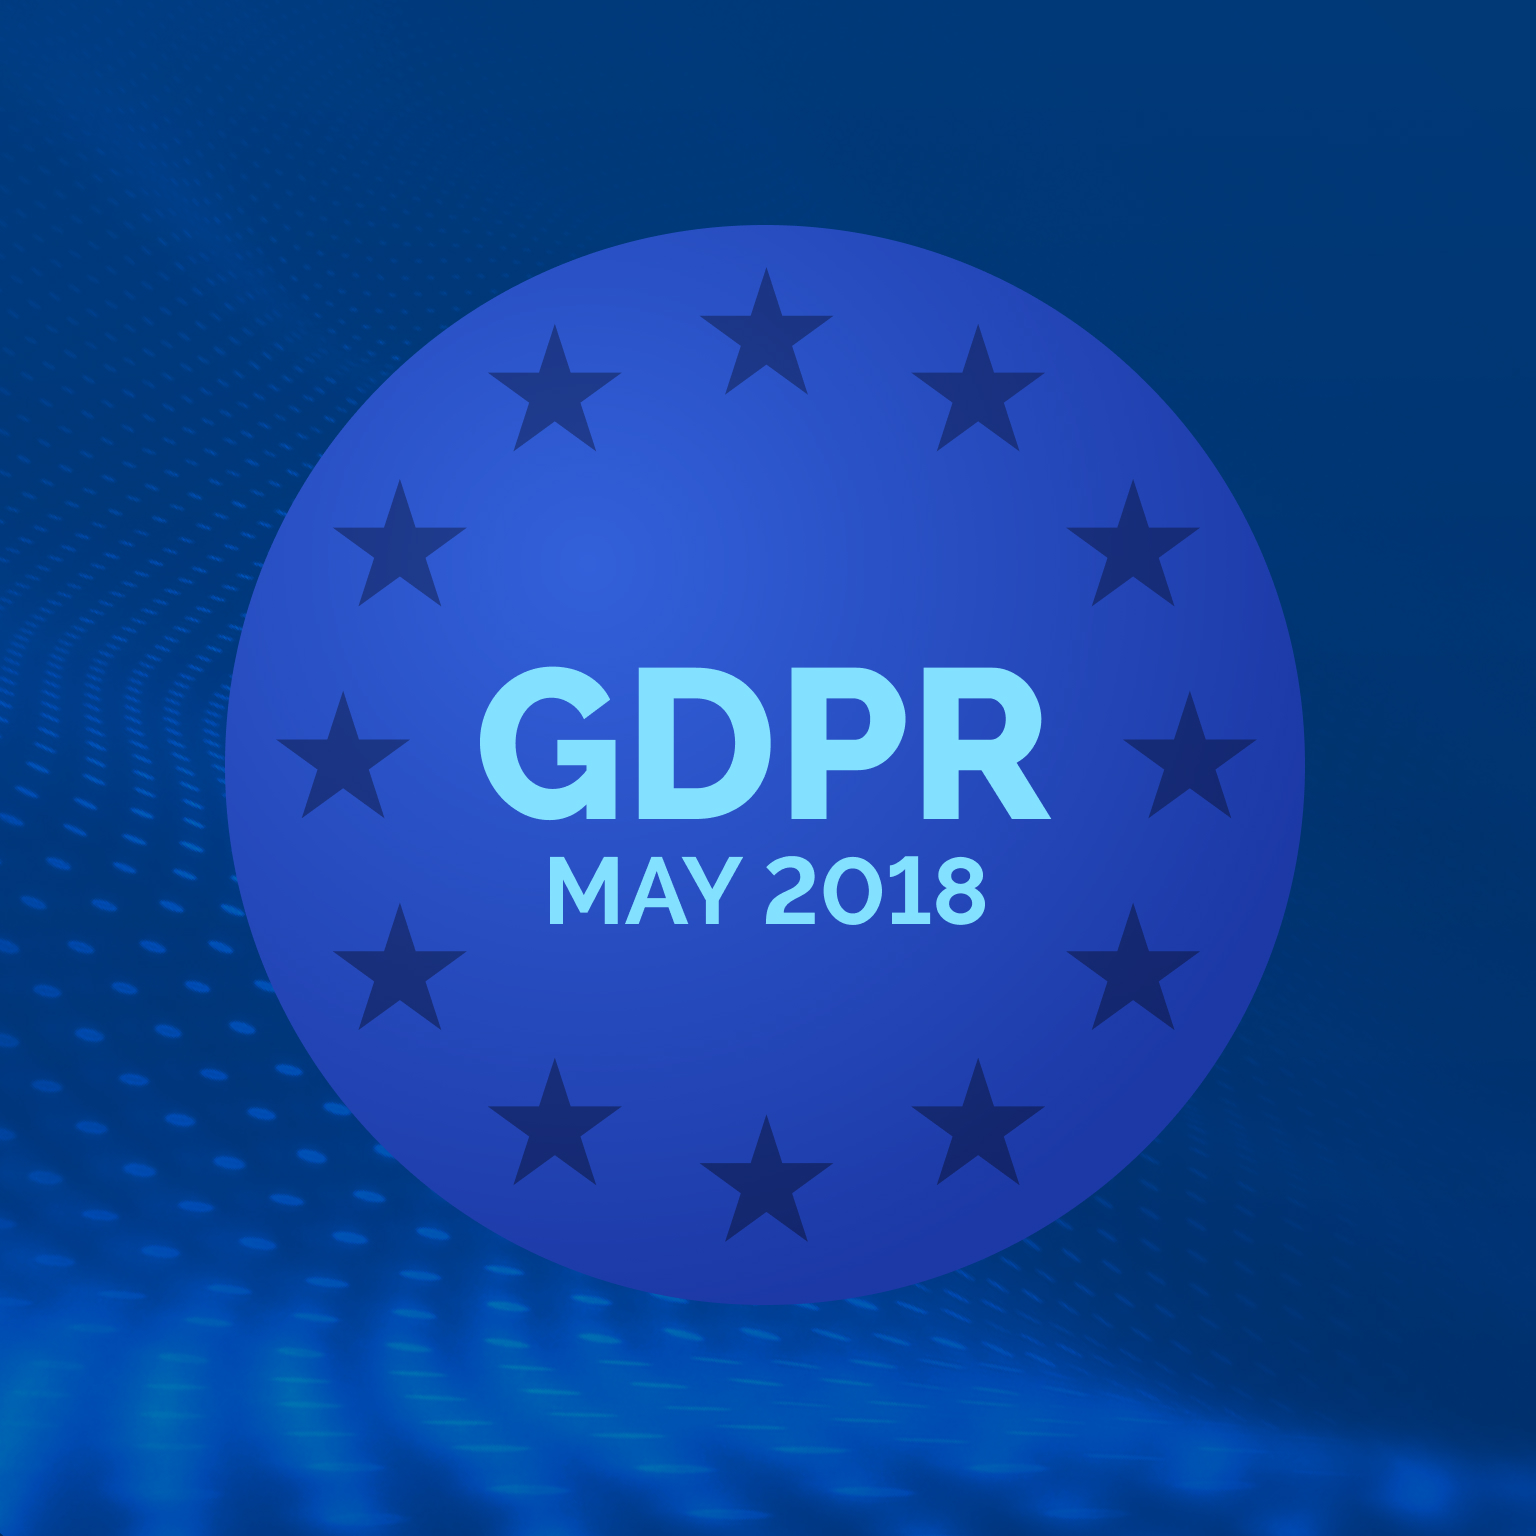 General Data Protection Regulation (GDPR) - Enveil's ZeroReveal™ Search reduces liability for companies processing datasets that include GDPR personal data or utilizing third-party data services that include GDPR personal data. By implementing ZeroReveal™ Search, companies can reach compliance without overhauling their current practices and resources.